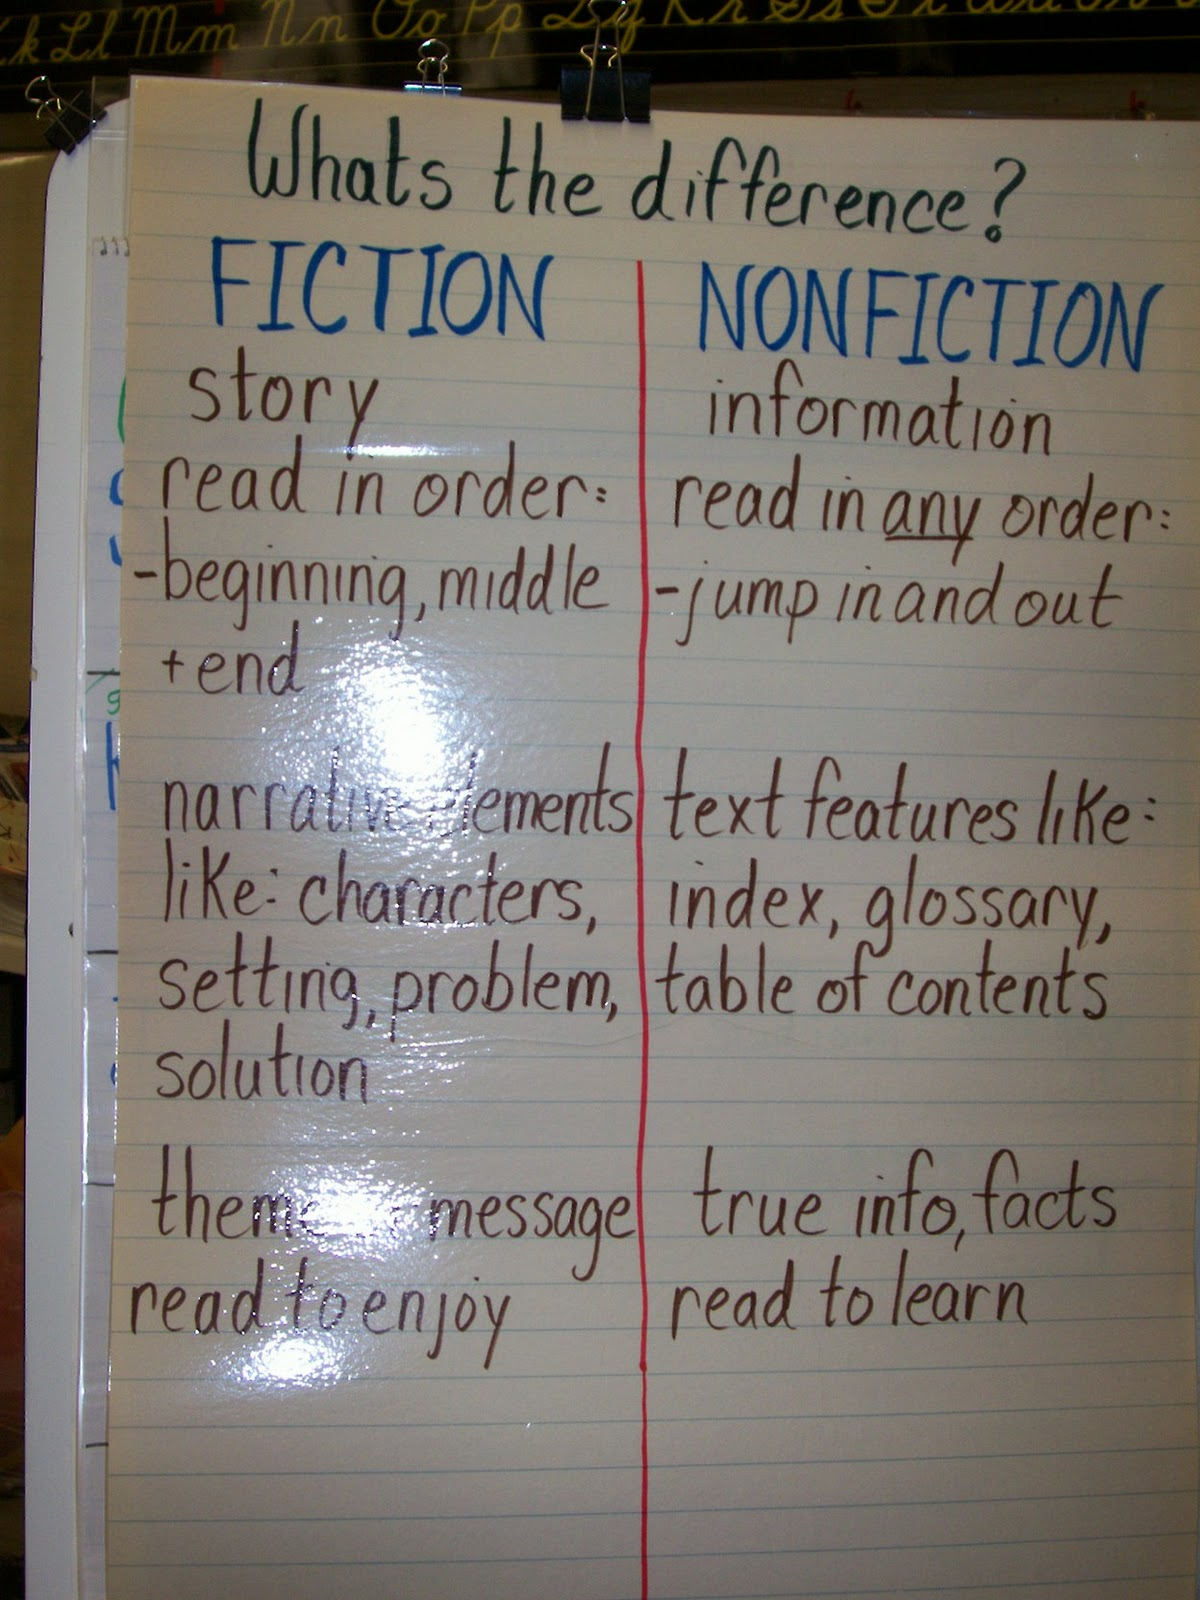 Reading Is Thinking Fiction Vs Nonfiction Whats The